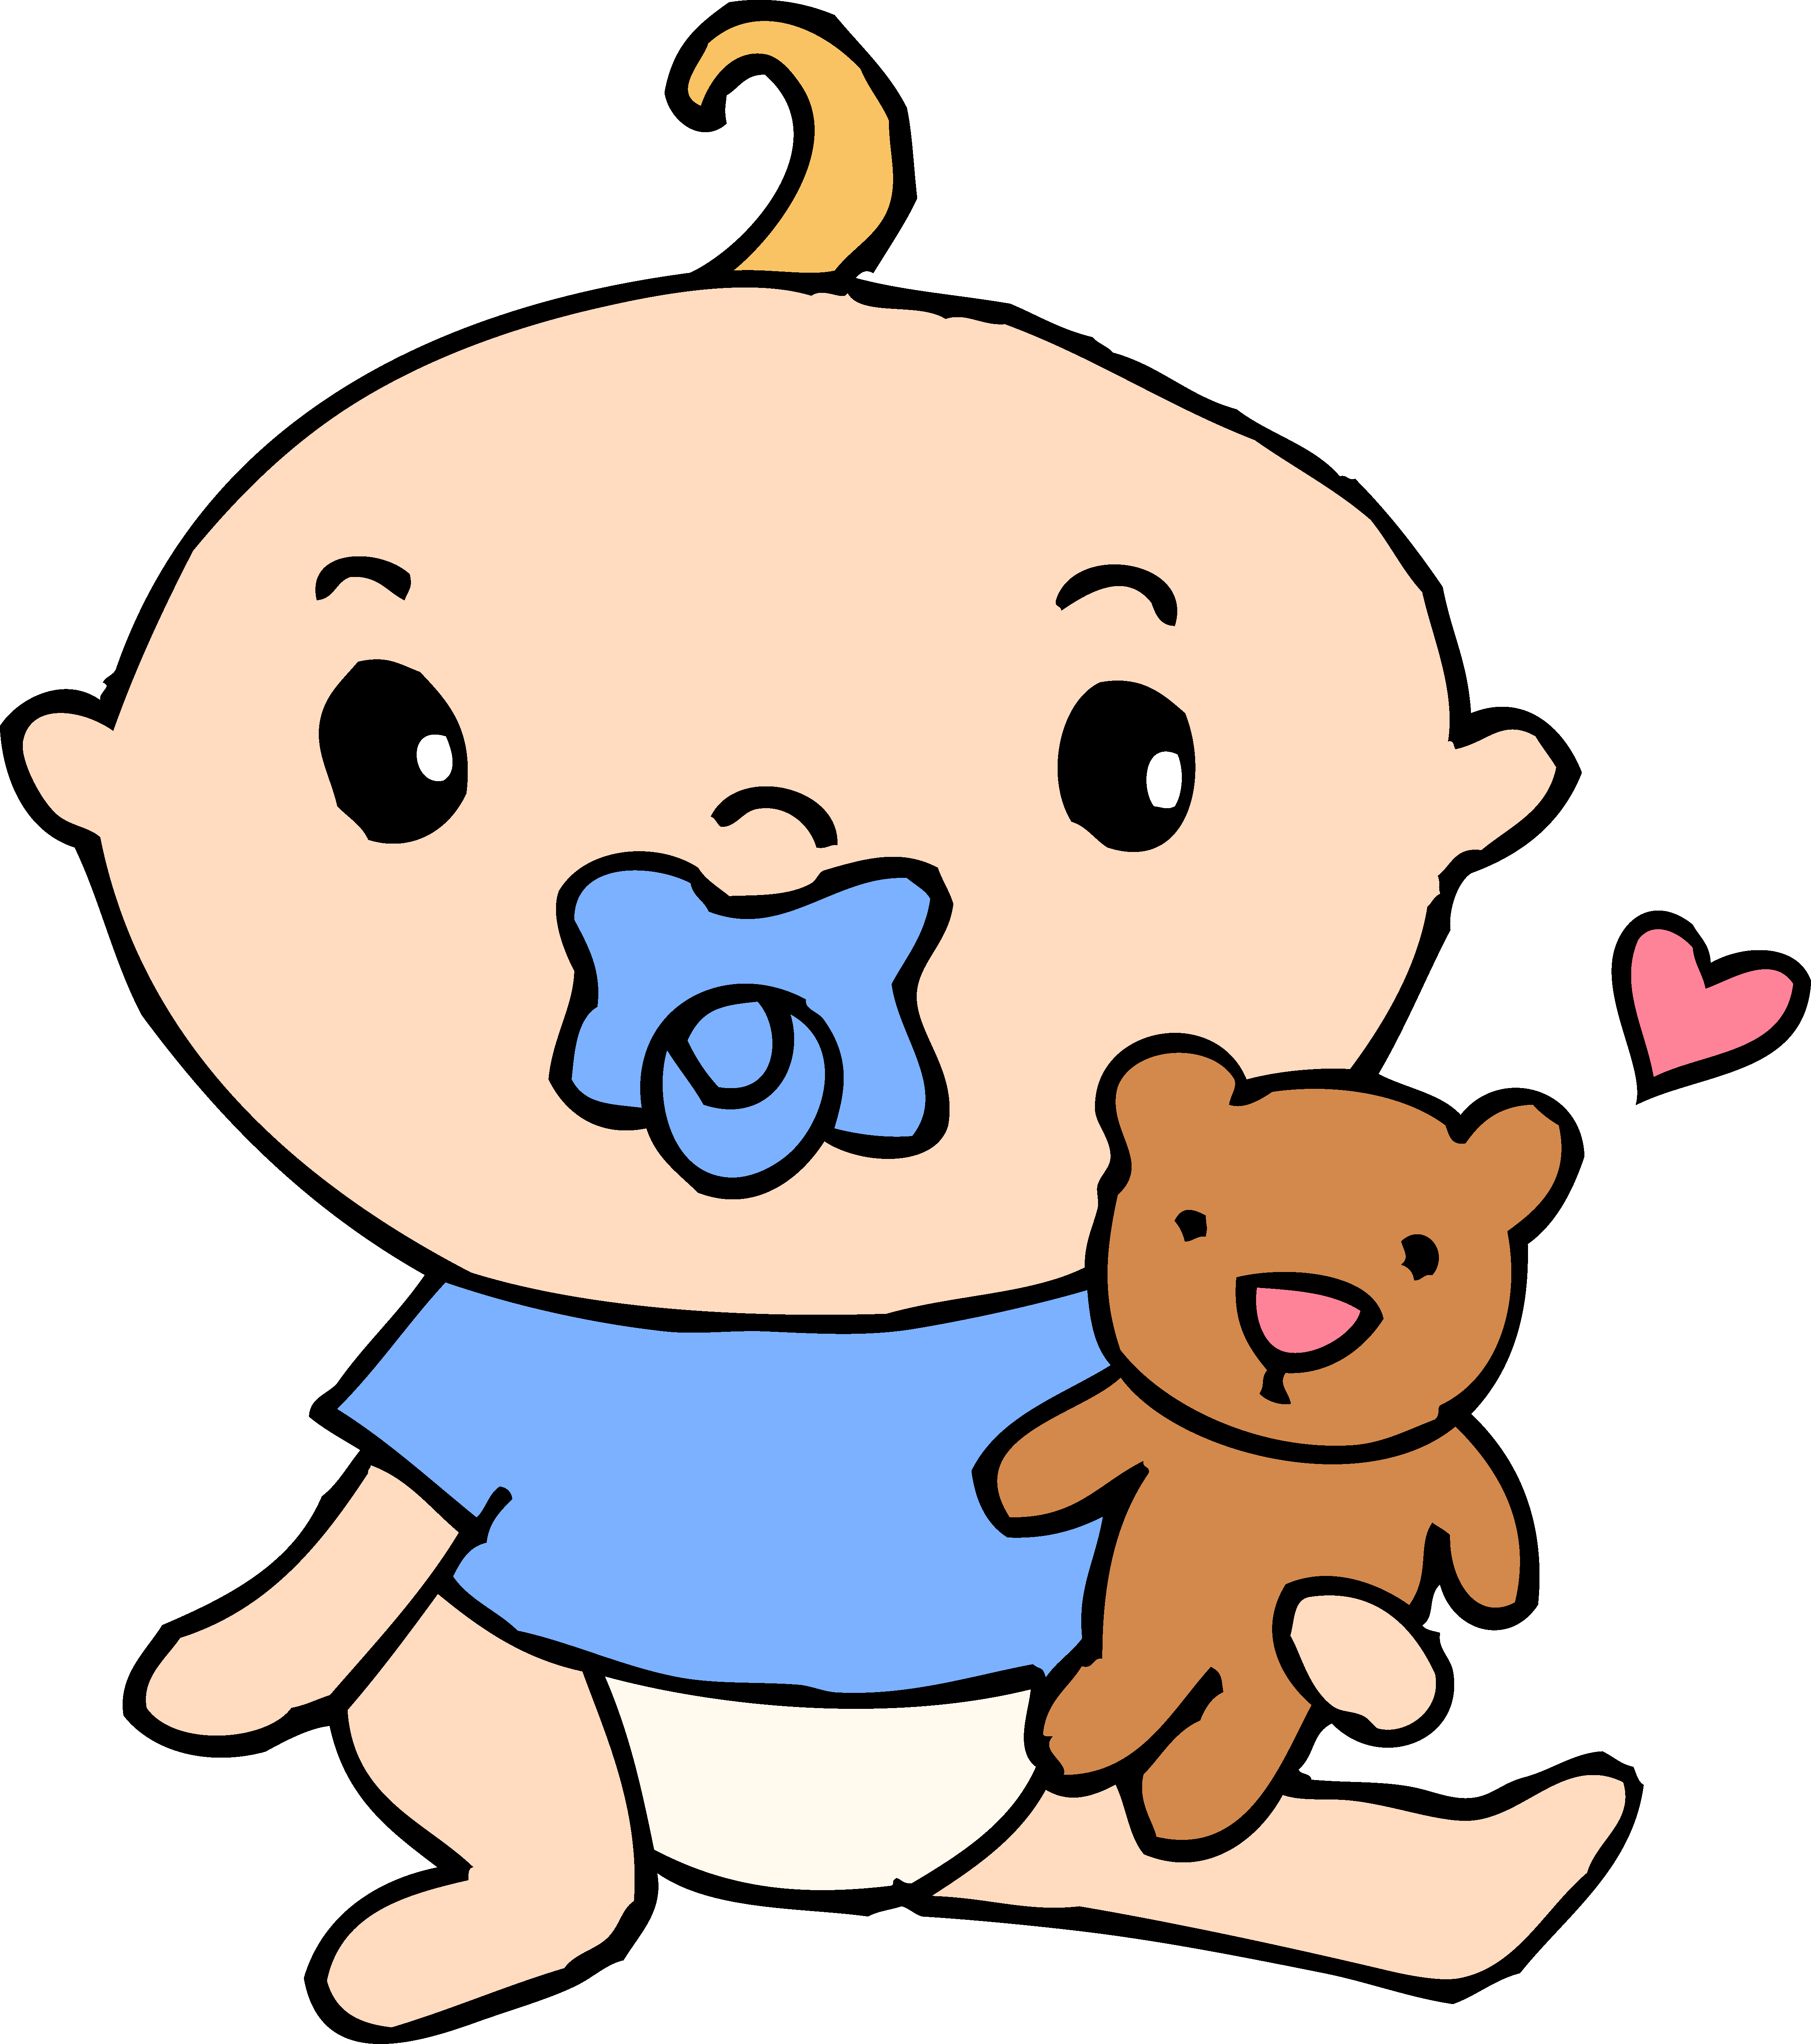 4755x5367 Baby Superhero Clipart Free Images